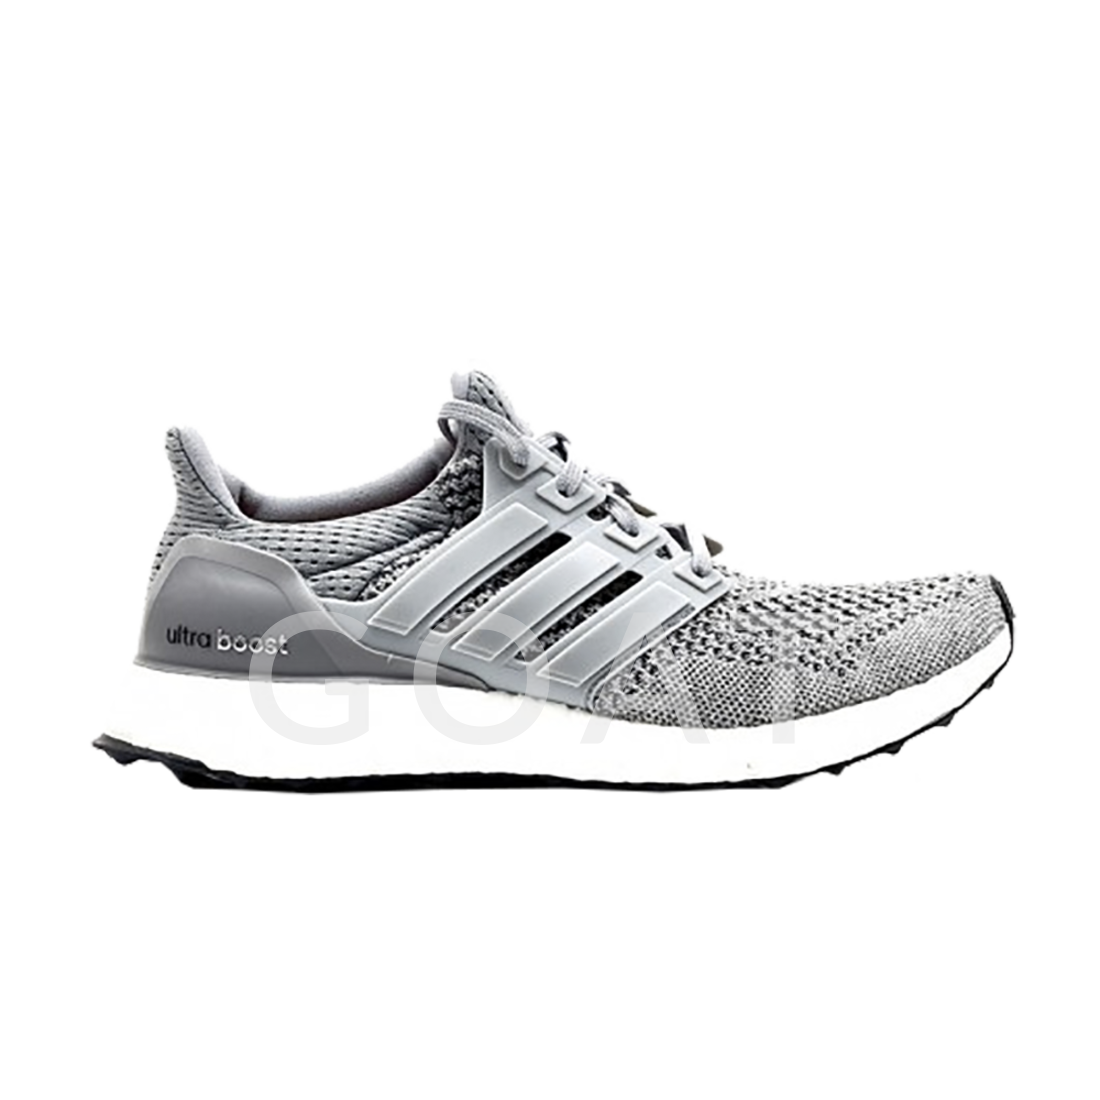 Adidas Ultra Boost 3.0 Military Cargo Green / Utility Gray UK 9